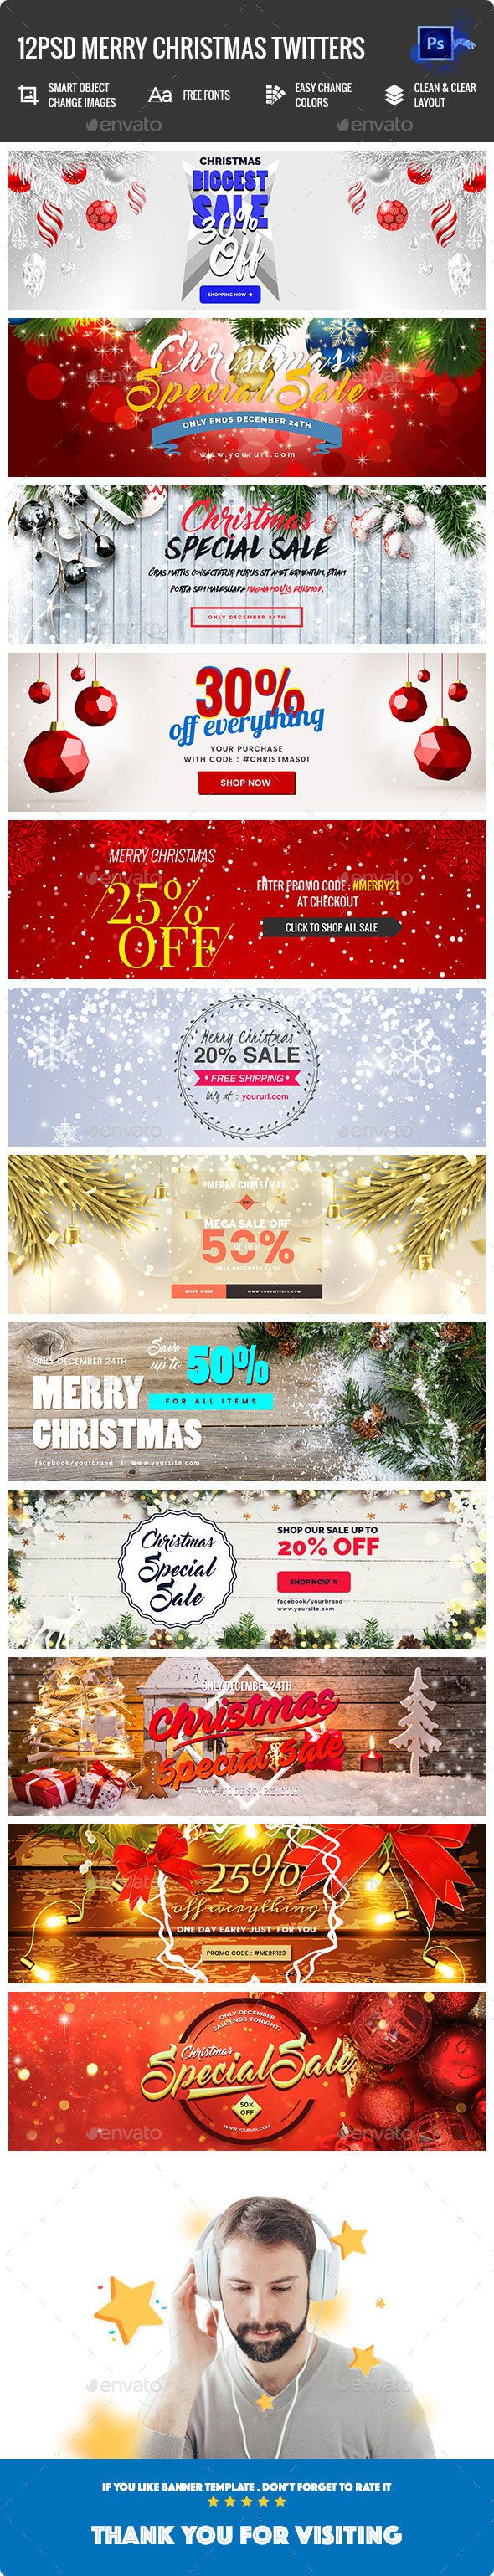 Merry Christmas Twitter Header  12PSD — Photoshop PSD #greeting card #shopping • Available here ➝ https://graphicriver.net/item/merry-christmas-twitter-header-12psd/21107626?ref=pxcr